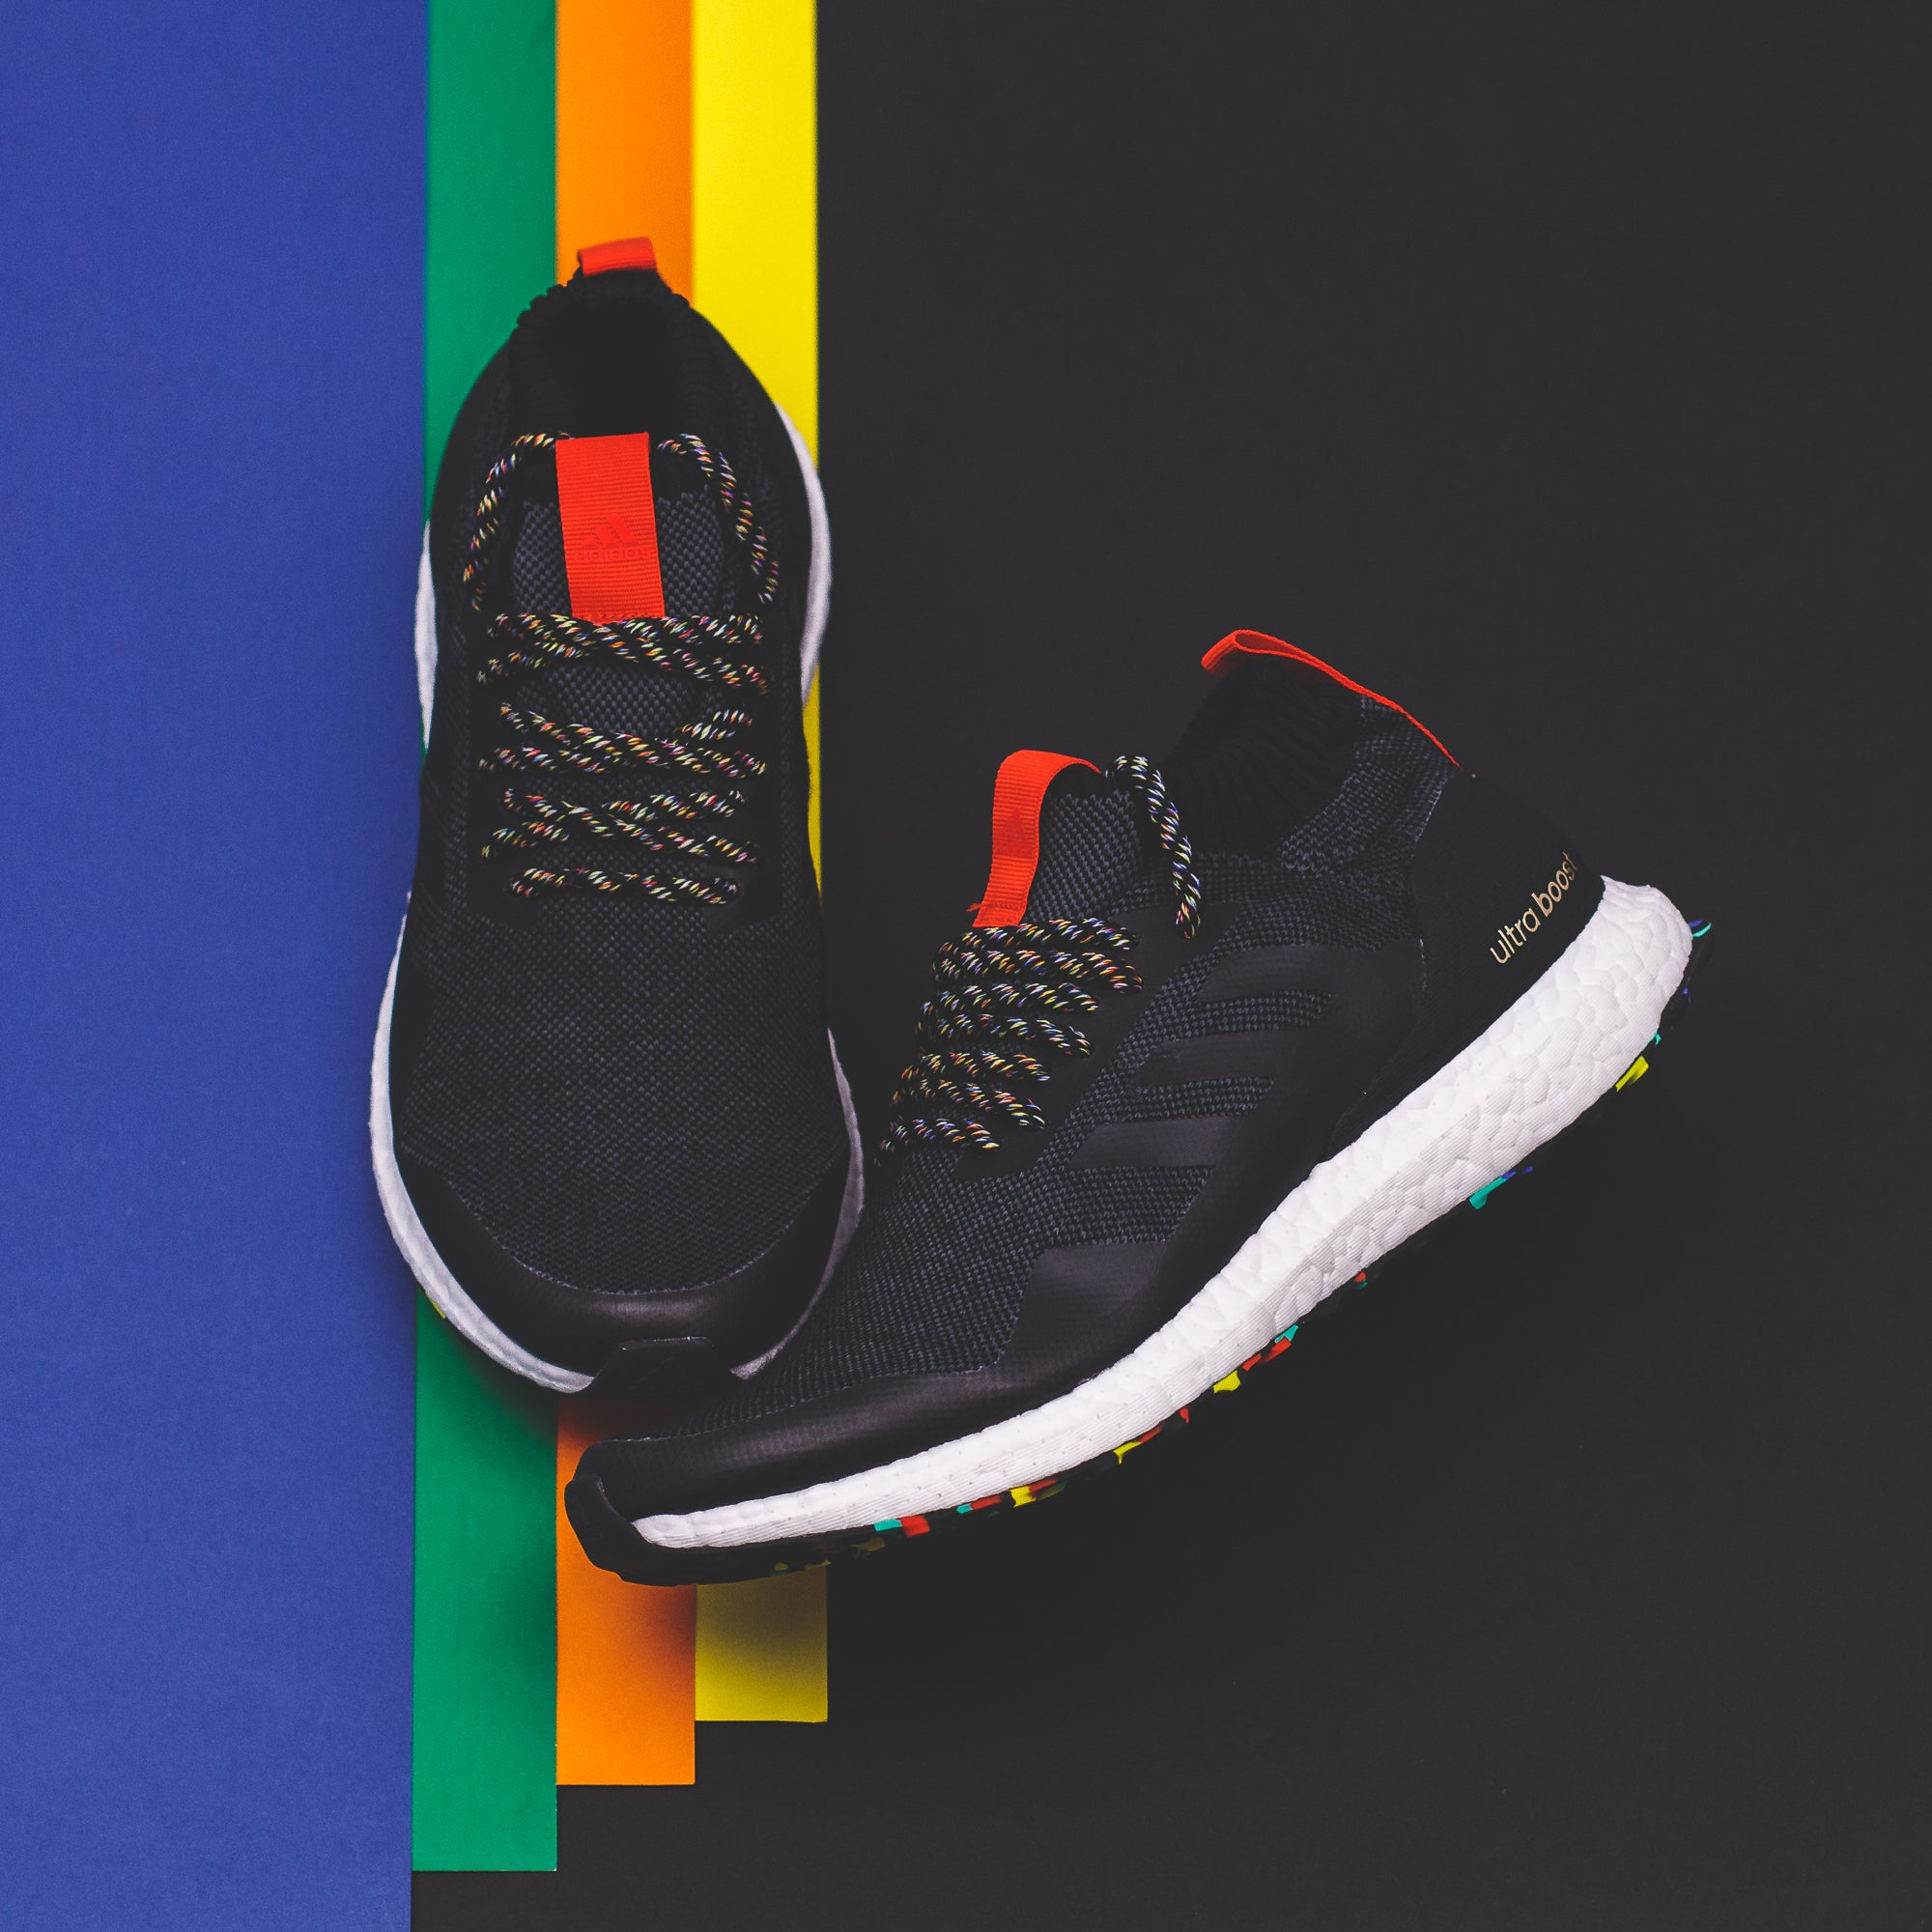 c3be016c9154a adidas Running Ultra Boost Mid Multicolour - (G26841). Price   300 CAD.  Available Sizing  7-13 US MENS. Click Shop Now when the release is  available online!